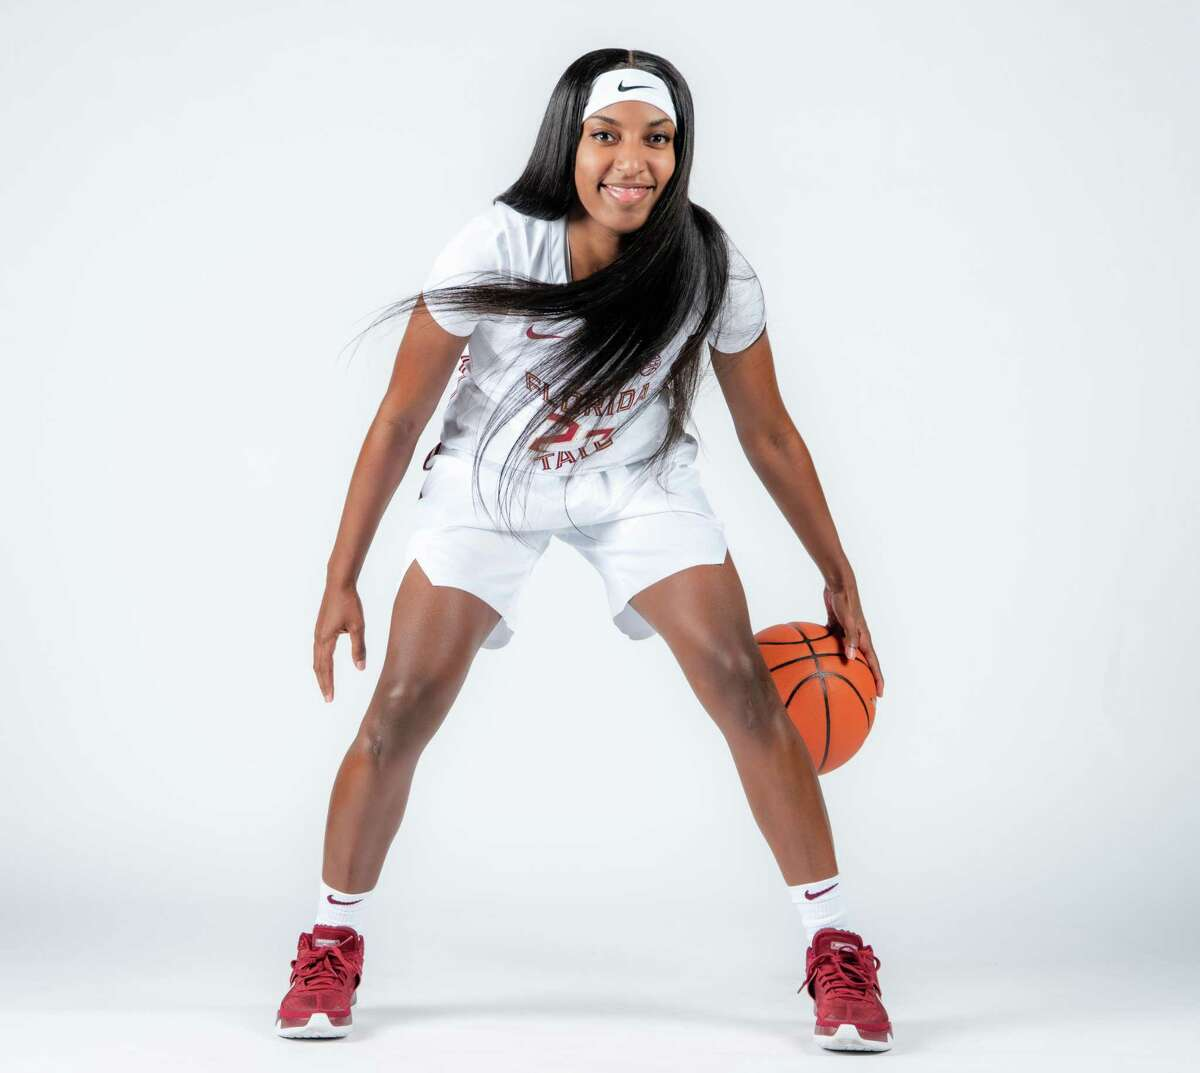 Redshirt senior guard Tiana England of Florida State, 2020-2021 women's basketball season.